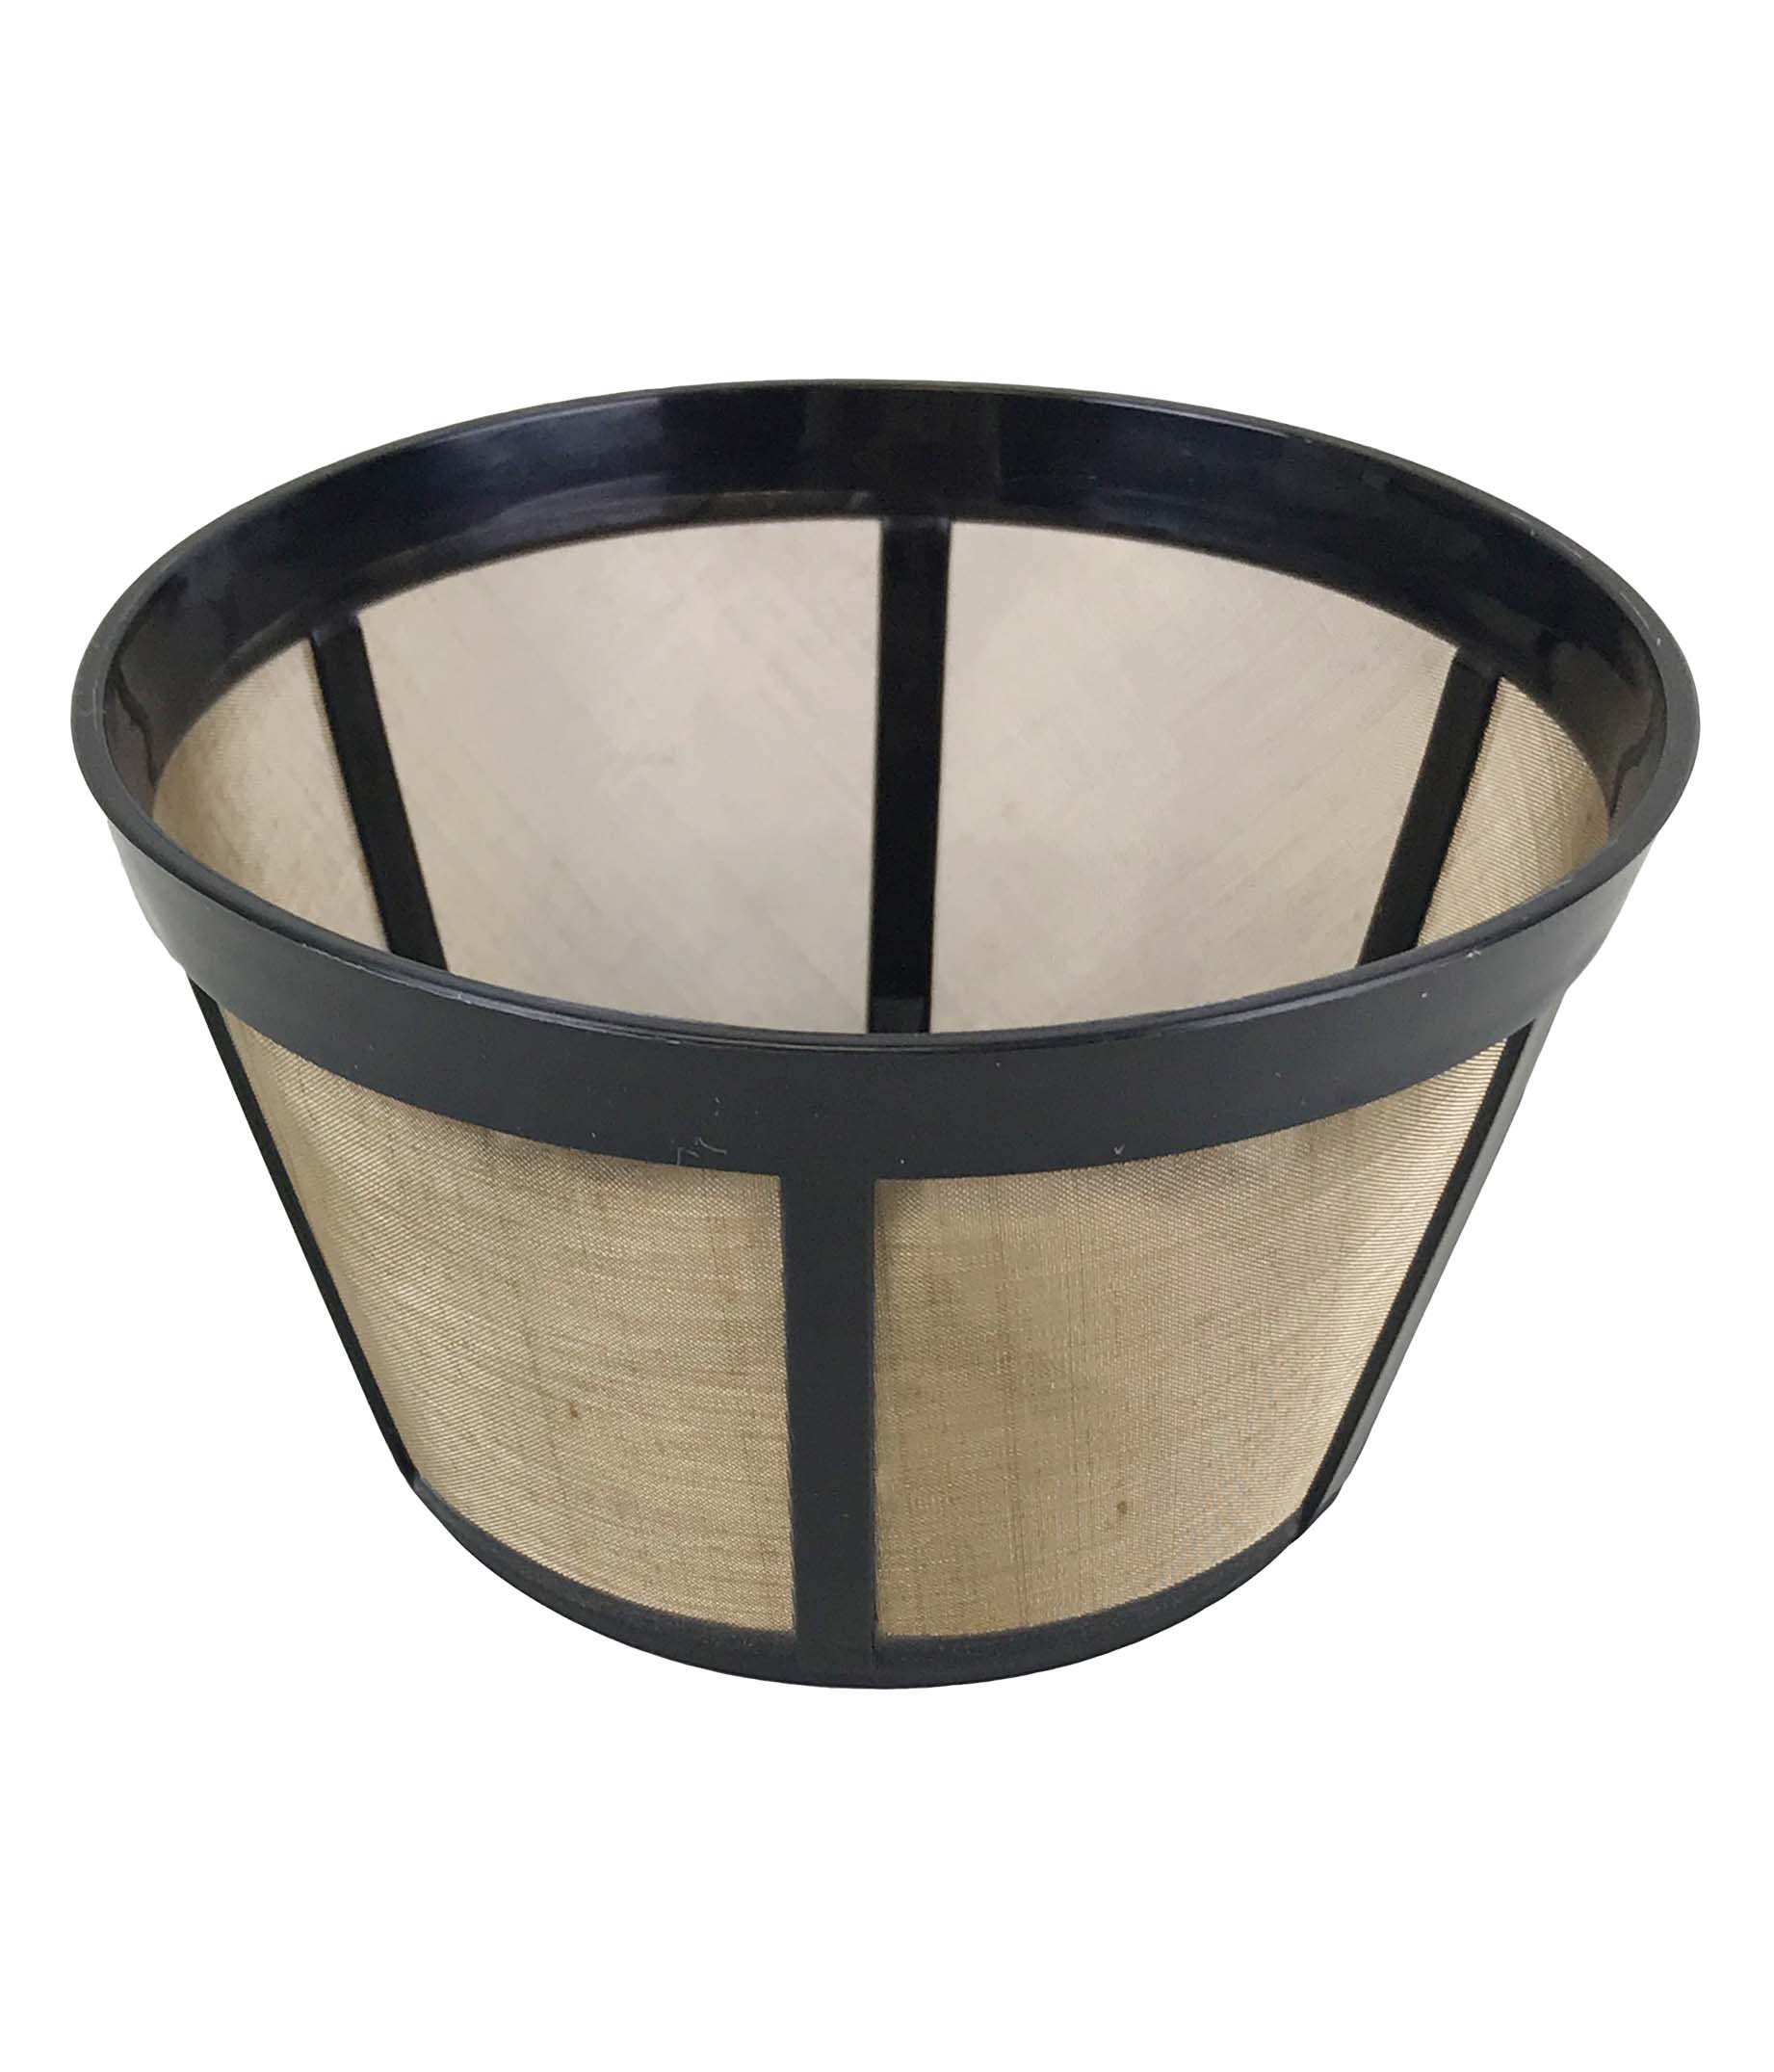 Replacement for Bunn Basket Coffee Filter Fits BX, BTX, GRX, HG, HT NHB, NHS, ST, Washable & Reusable, by Think Crucial